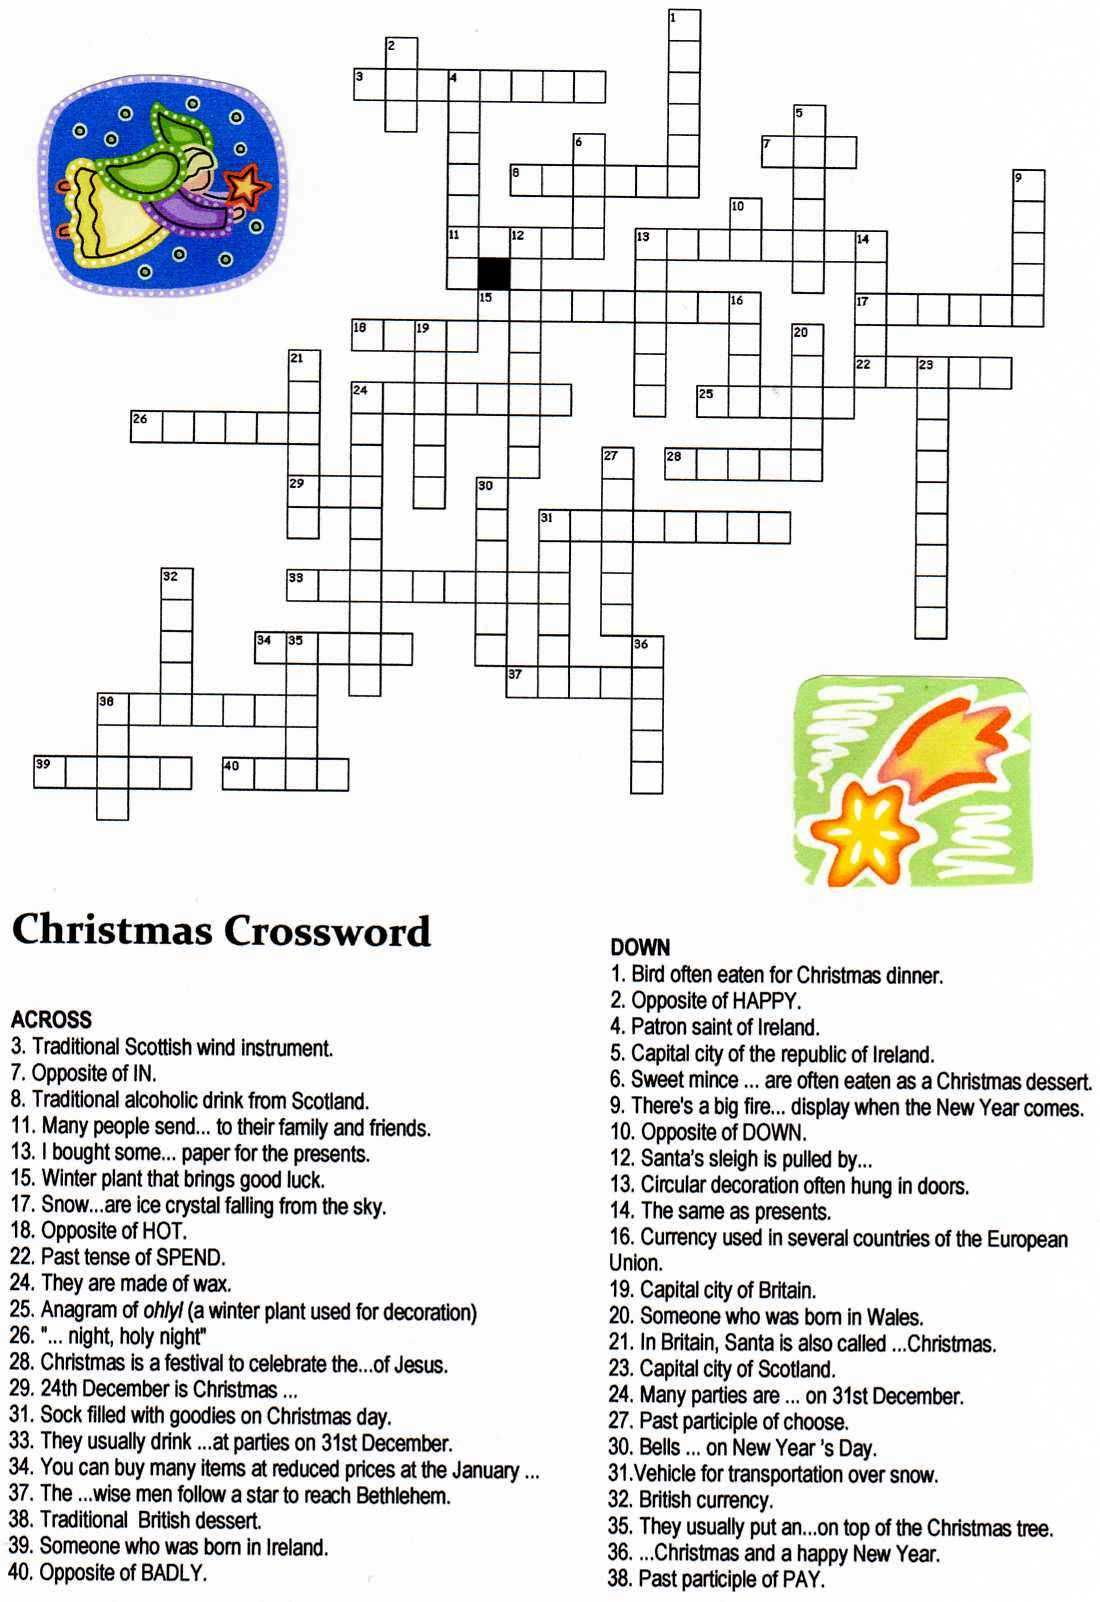 Christmas Angel Crossword Puzzle